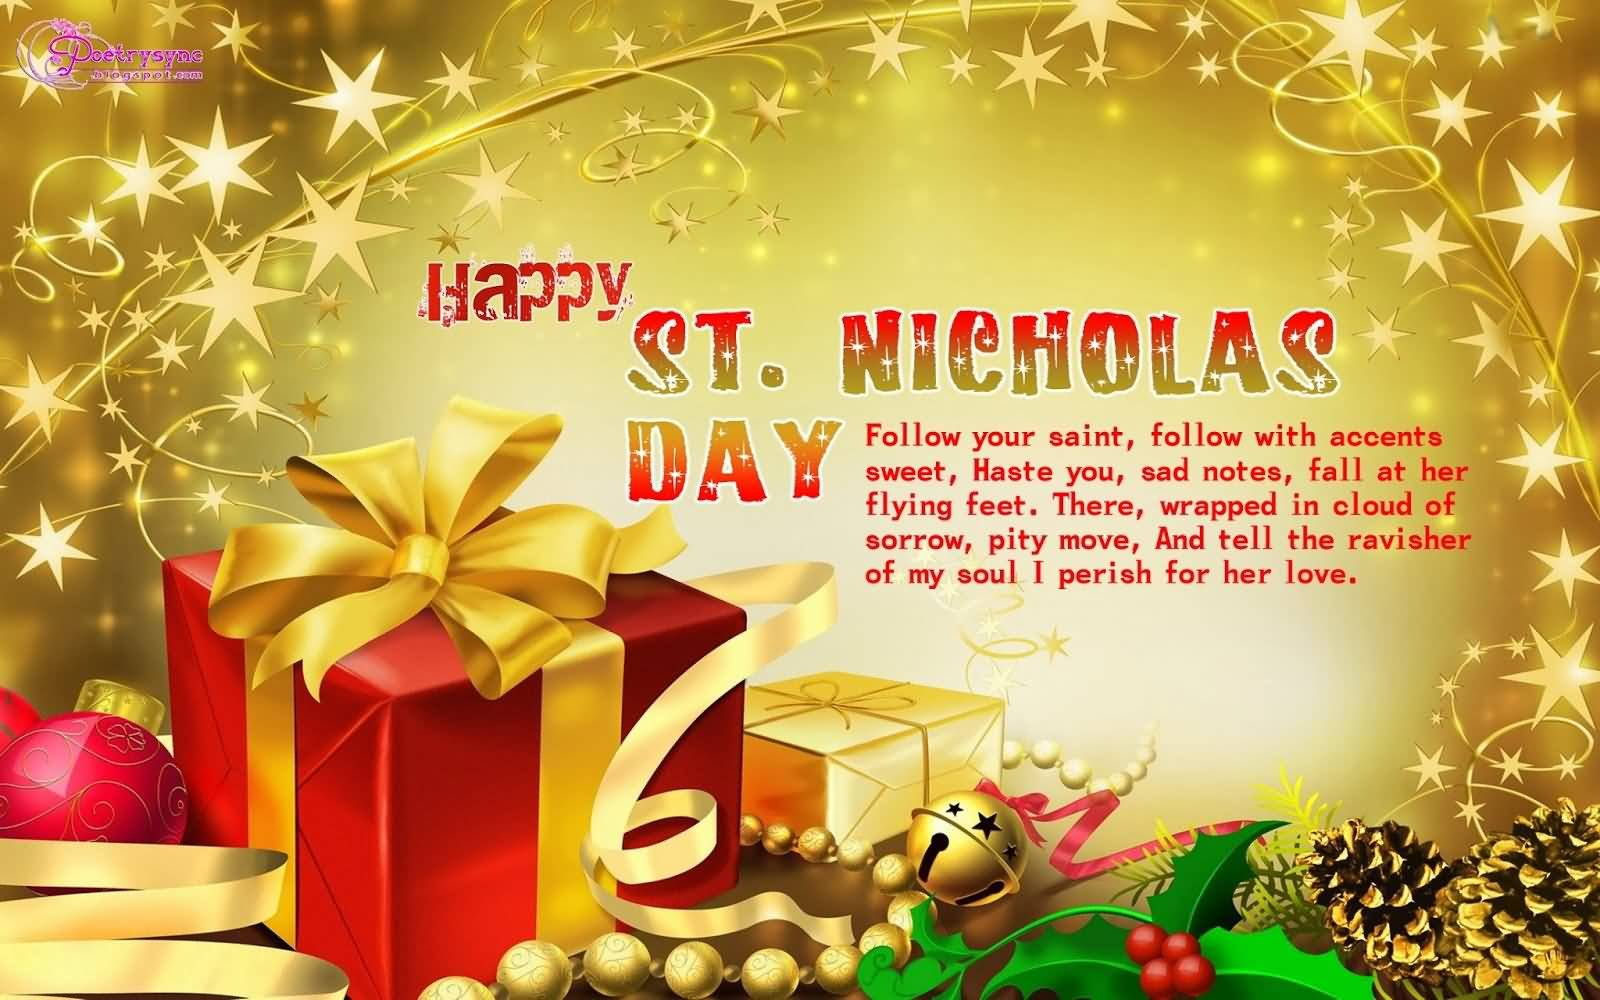 55 beautiful saint nicholas day greeting pictures happy st nicholas day follow your saint follow with accents sweet haste you kristyandbryce Choice Image